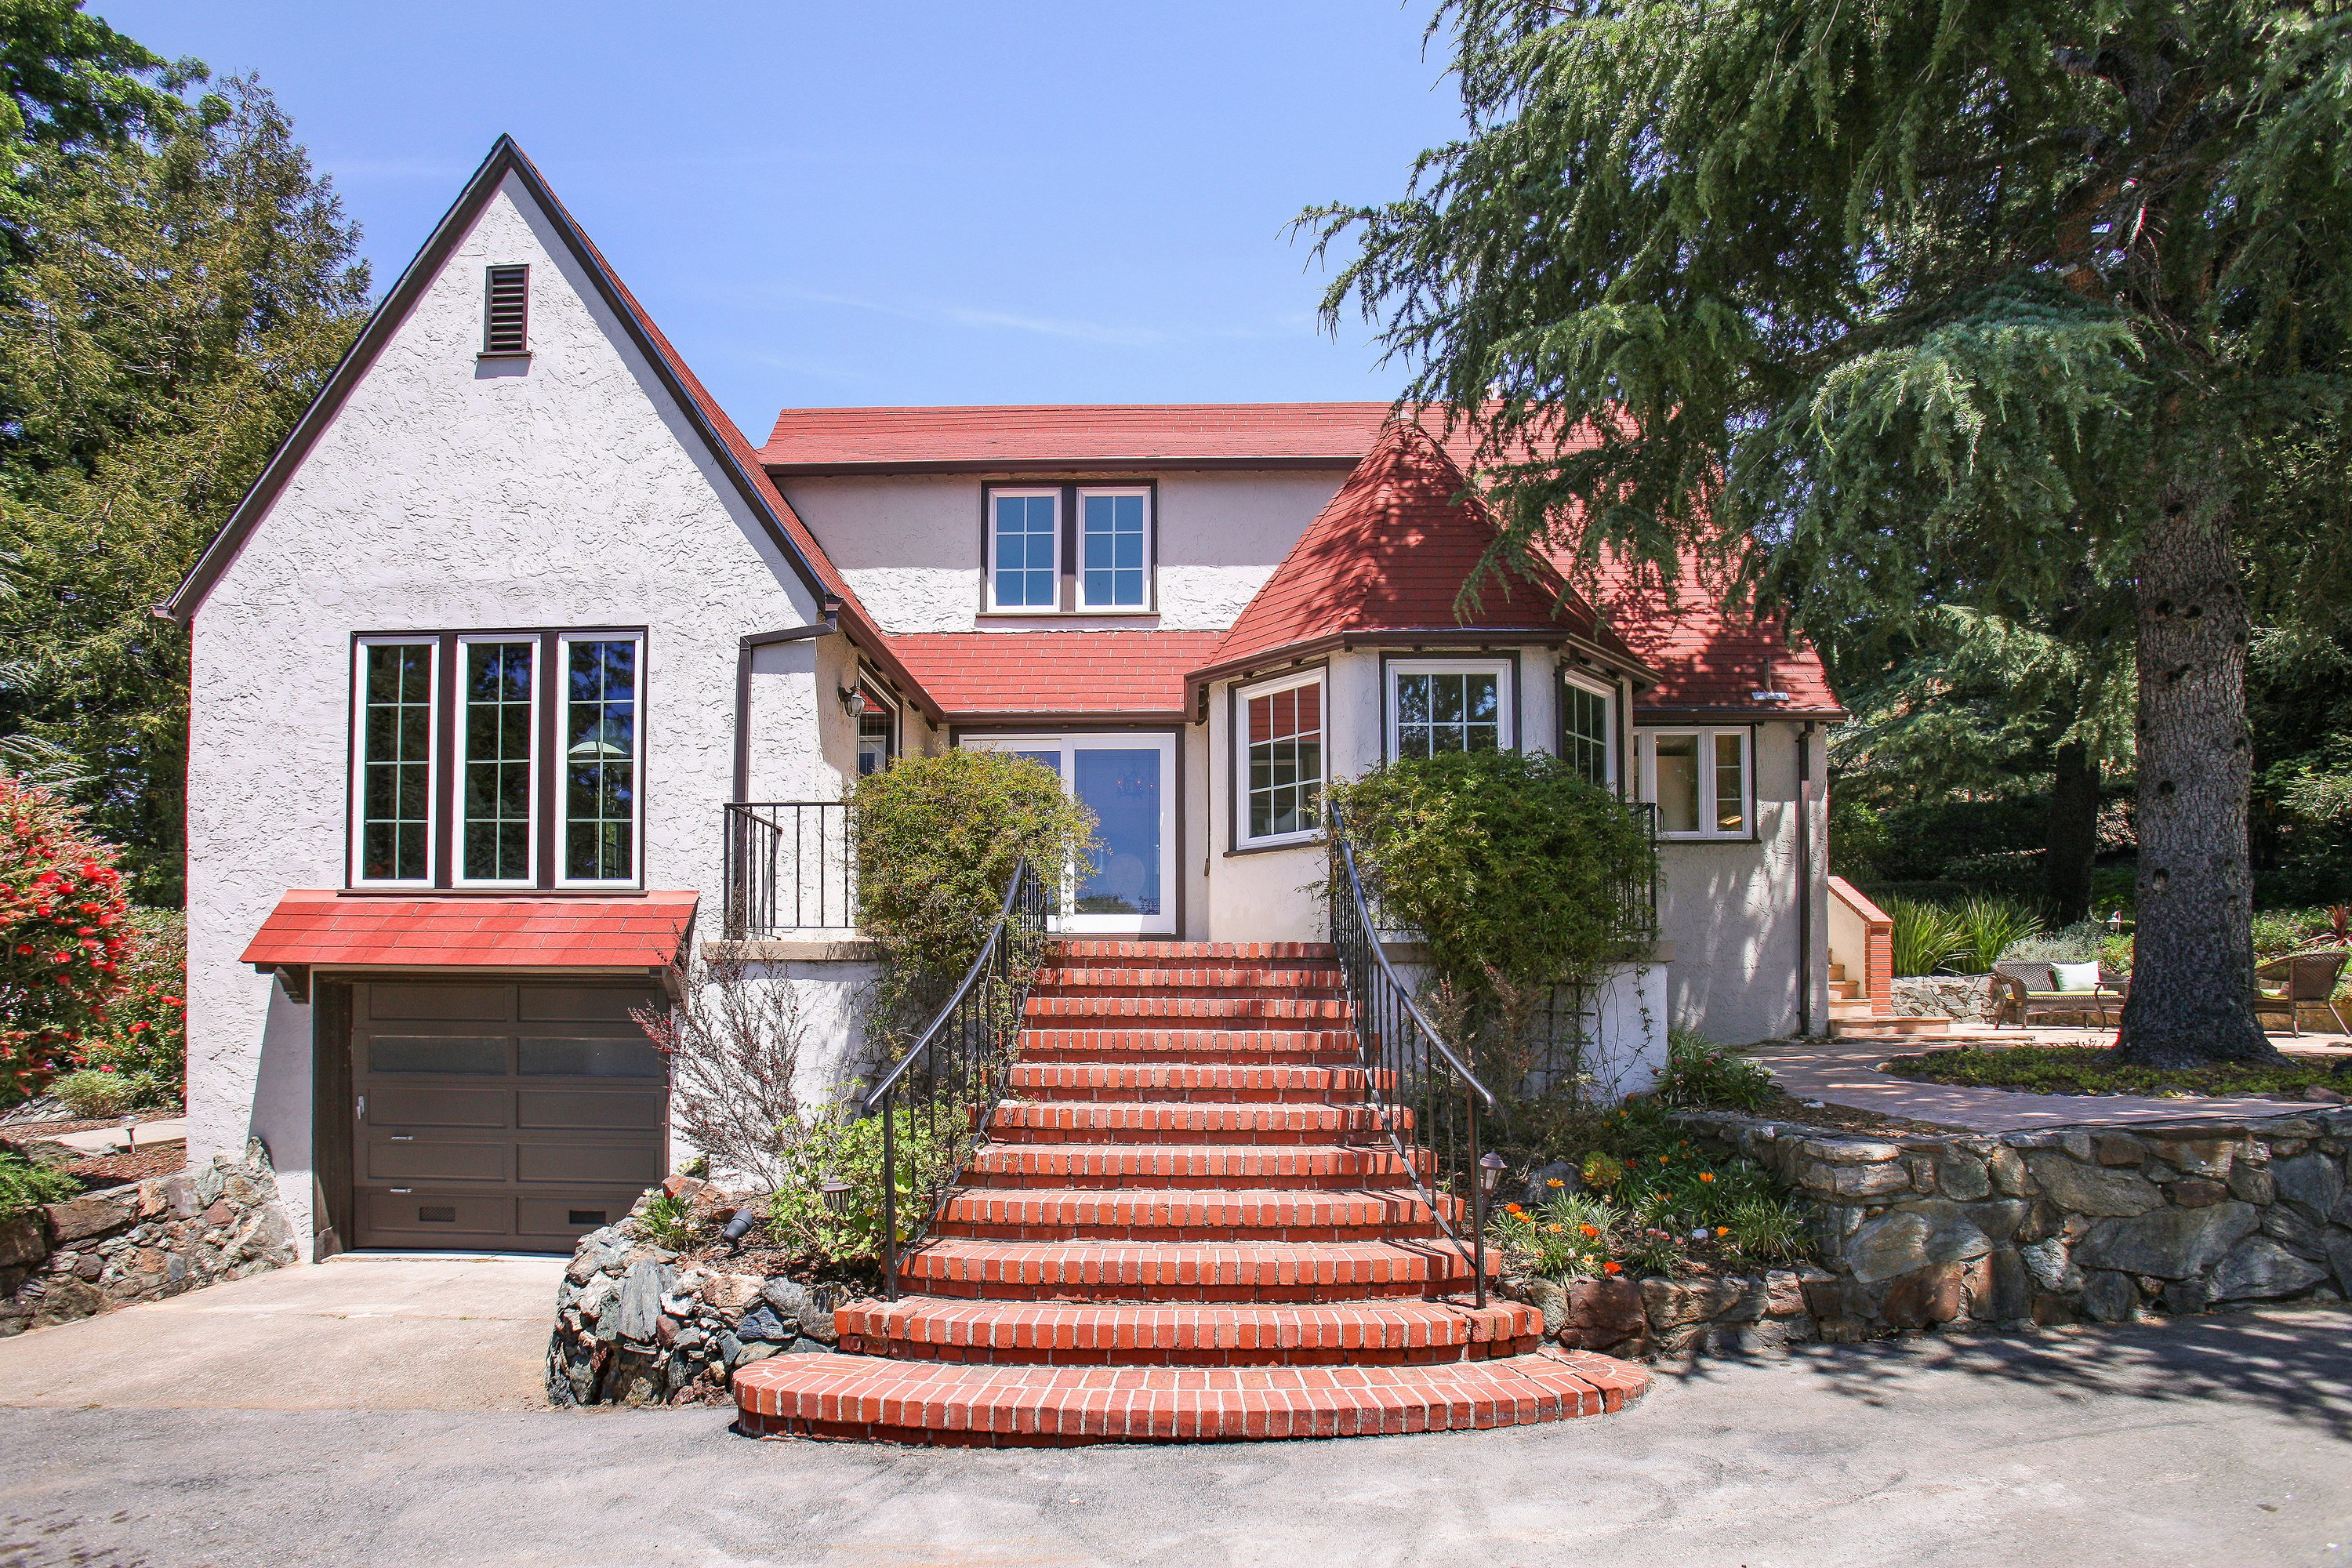 Single Family Home for Sale at Exquisite 1930's Tudor with Modern Upgrades and Vintage 26 Thomas Drive Mill Valley, California, 94941 United States